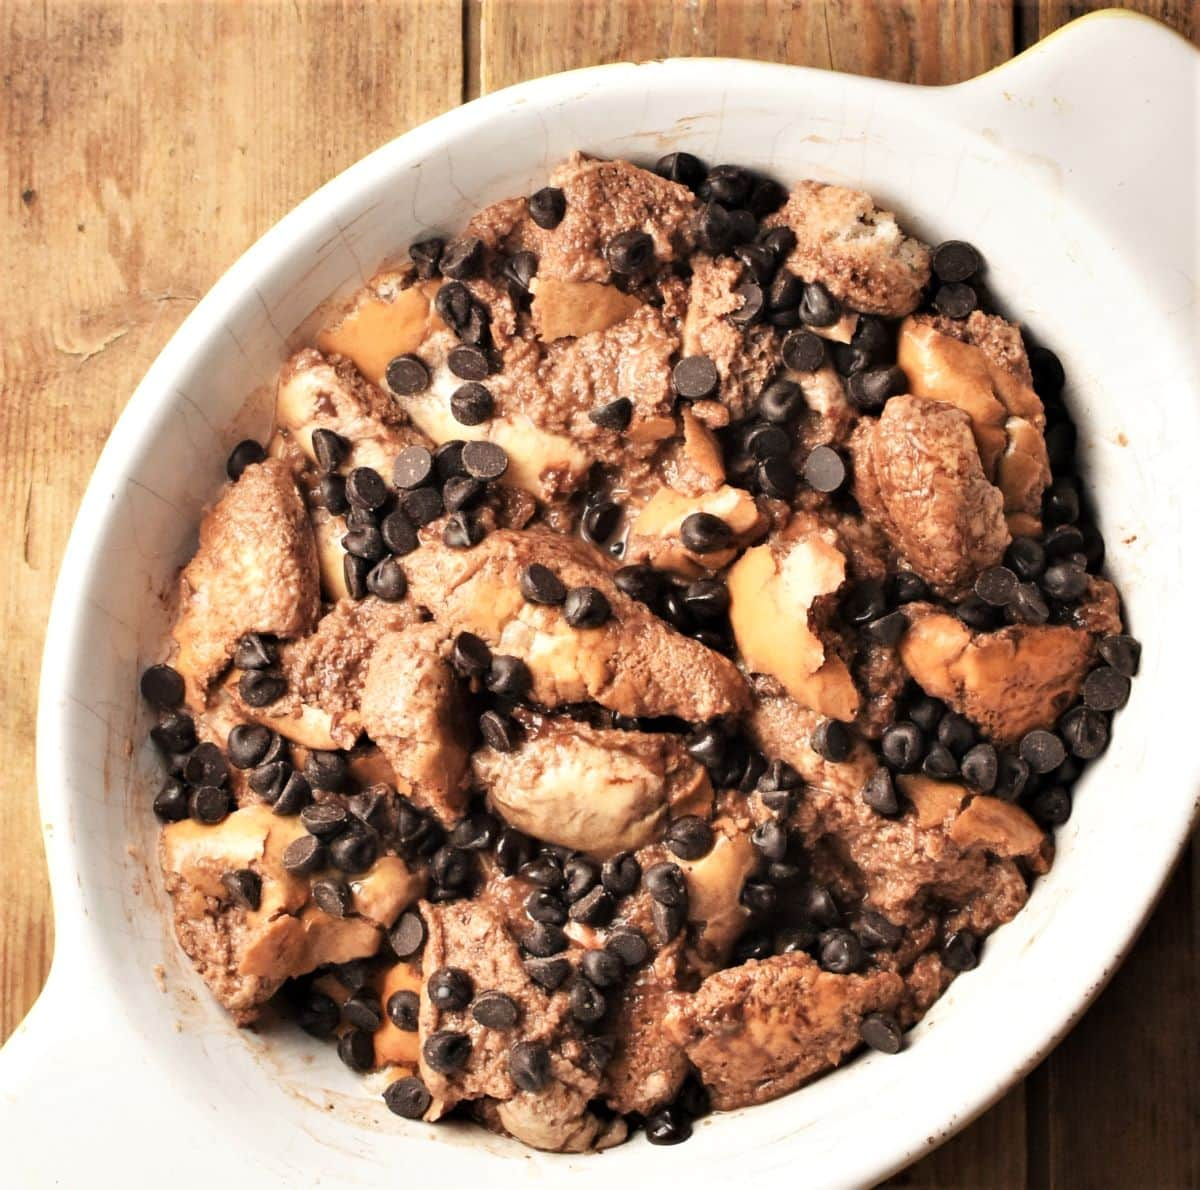 Making chocolate french toast casserole with chocolate chips in oval dish.